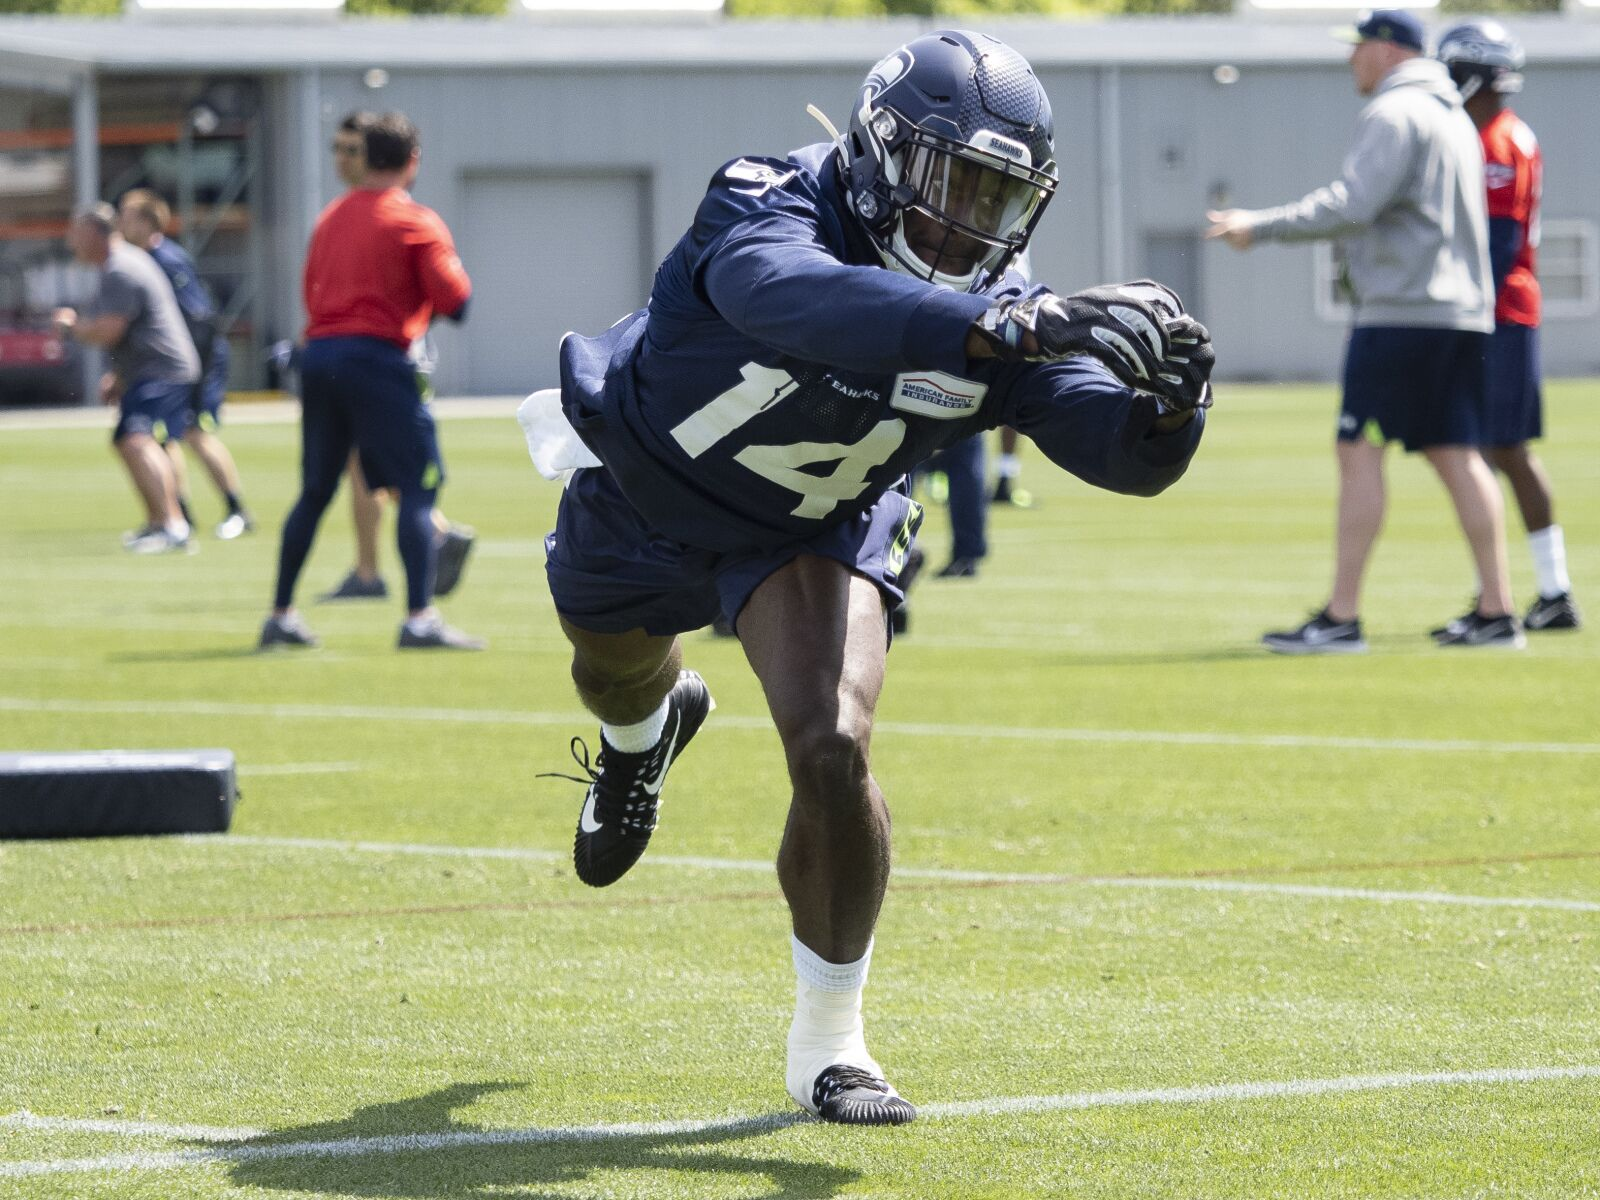 Seahawks excited about D.K. Metcalf's game